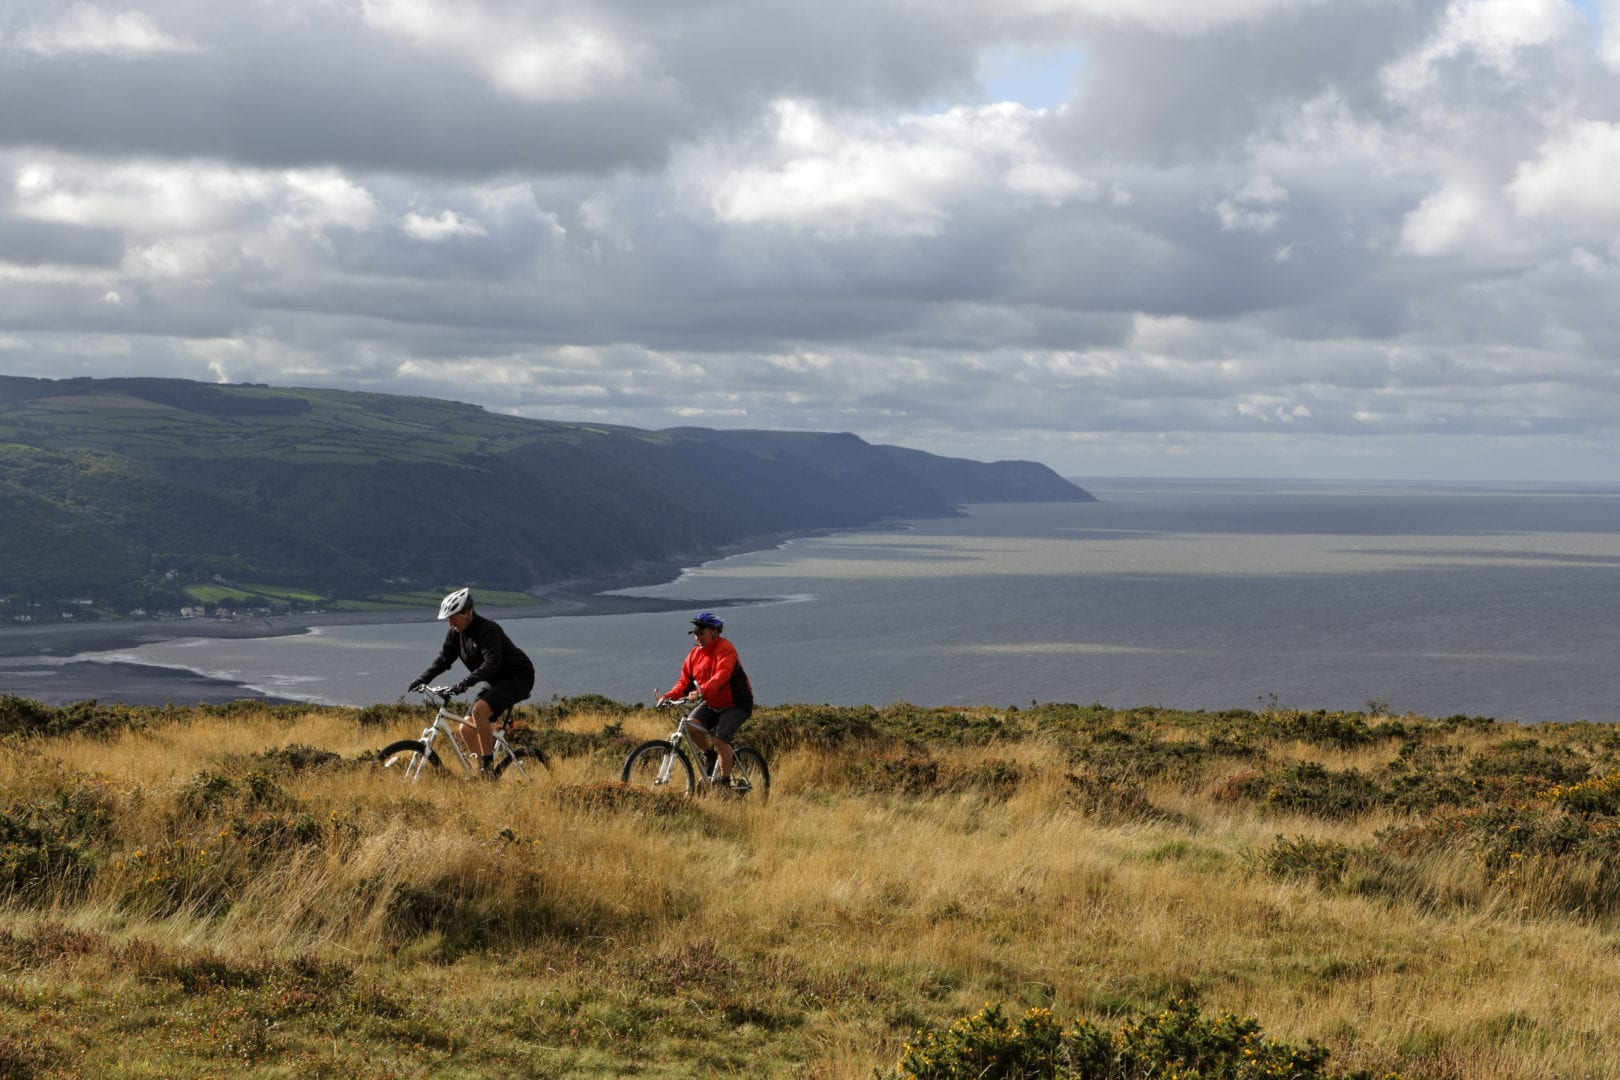 Mountain bikers Bossington Hill above Porlock Bay, on the Holnicote Estate, Exmoor National Park, Somerset.